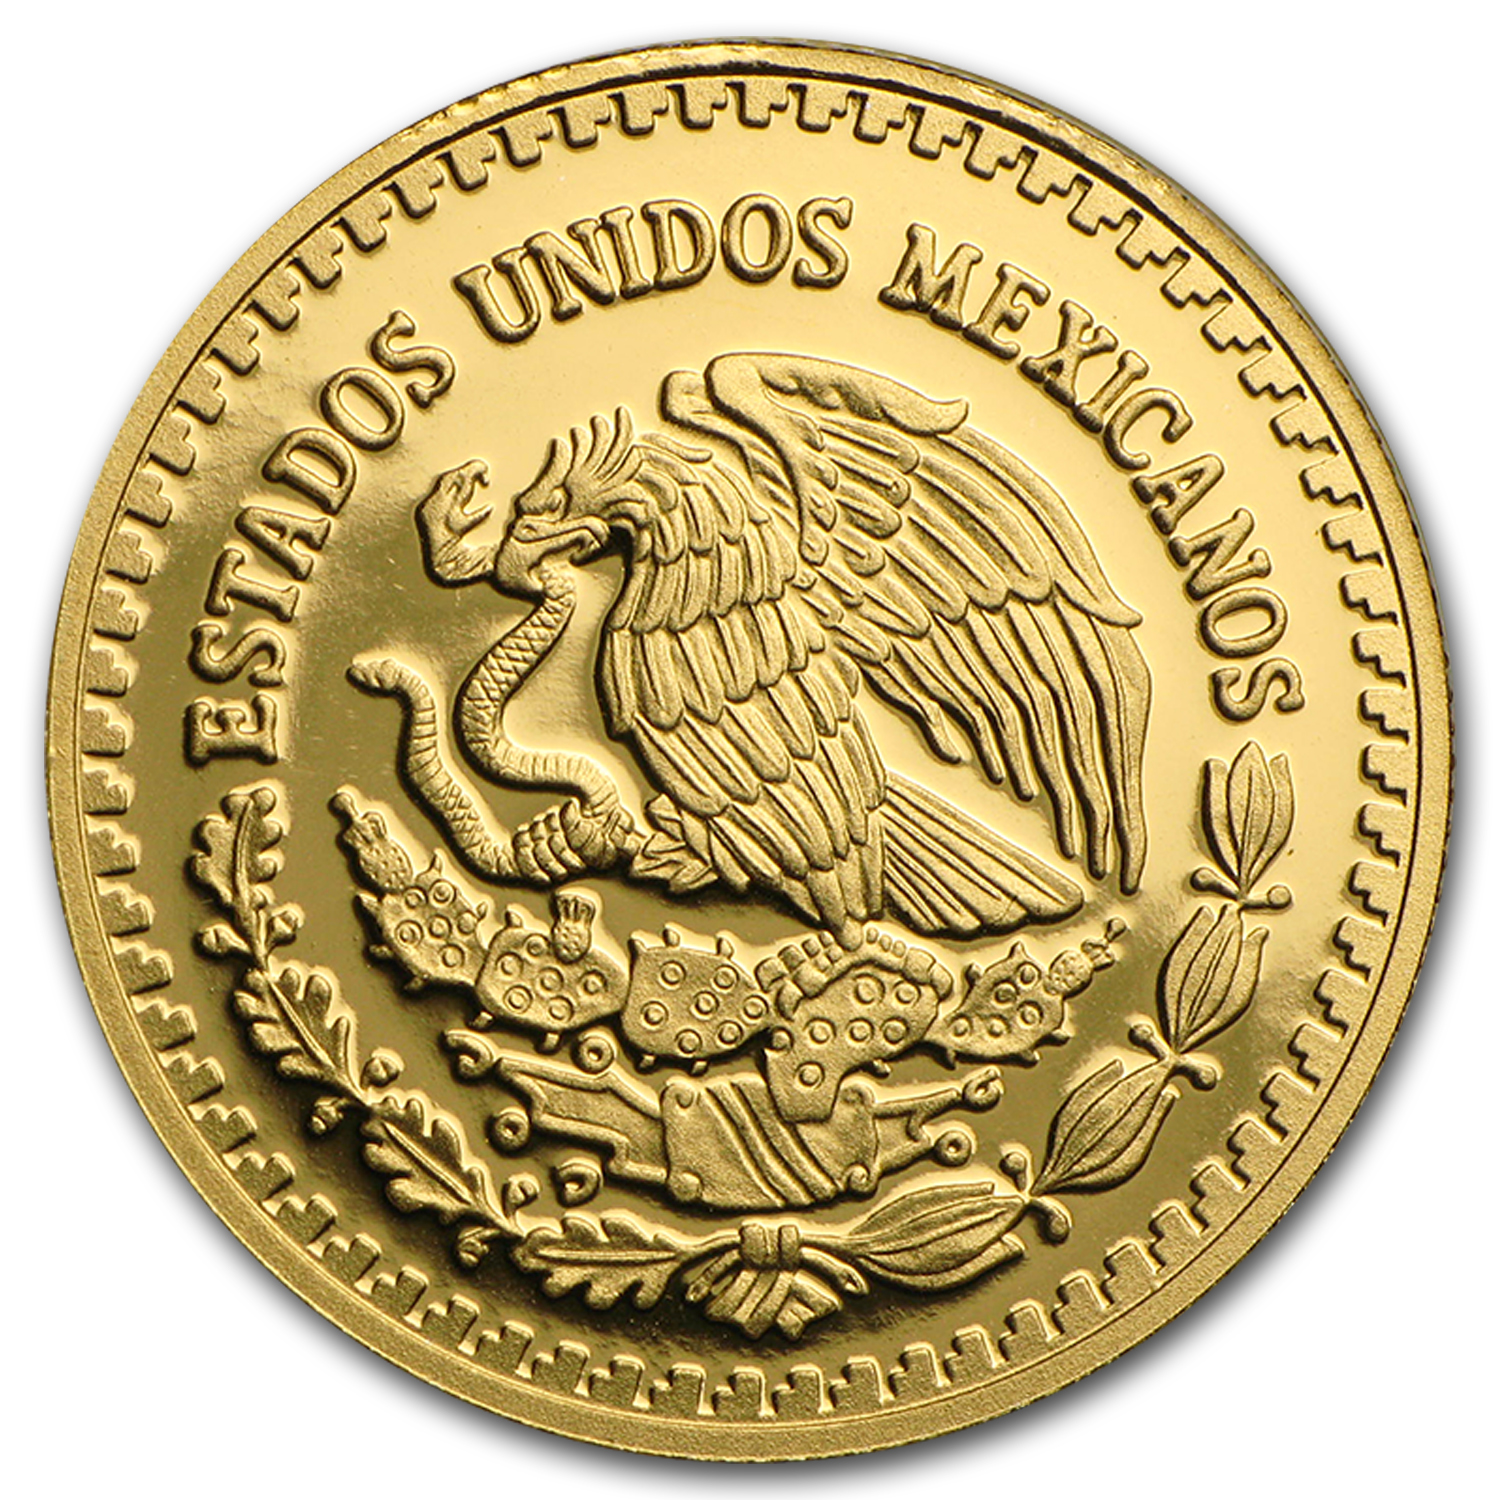 2016 Mexico 1/10 oz Proof Gold Libertad